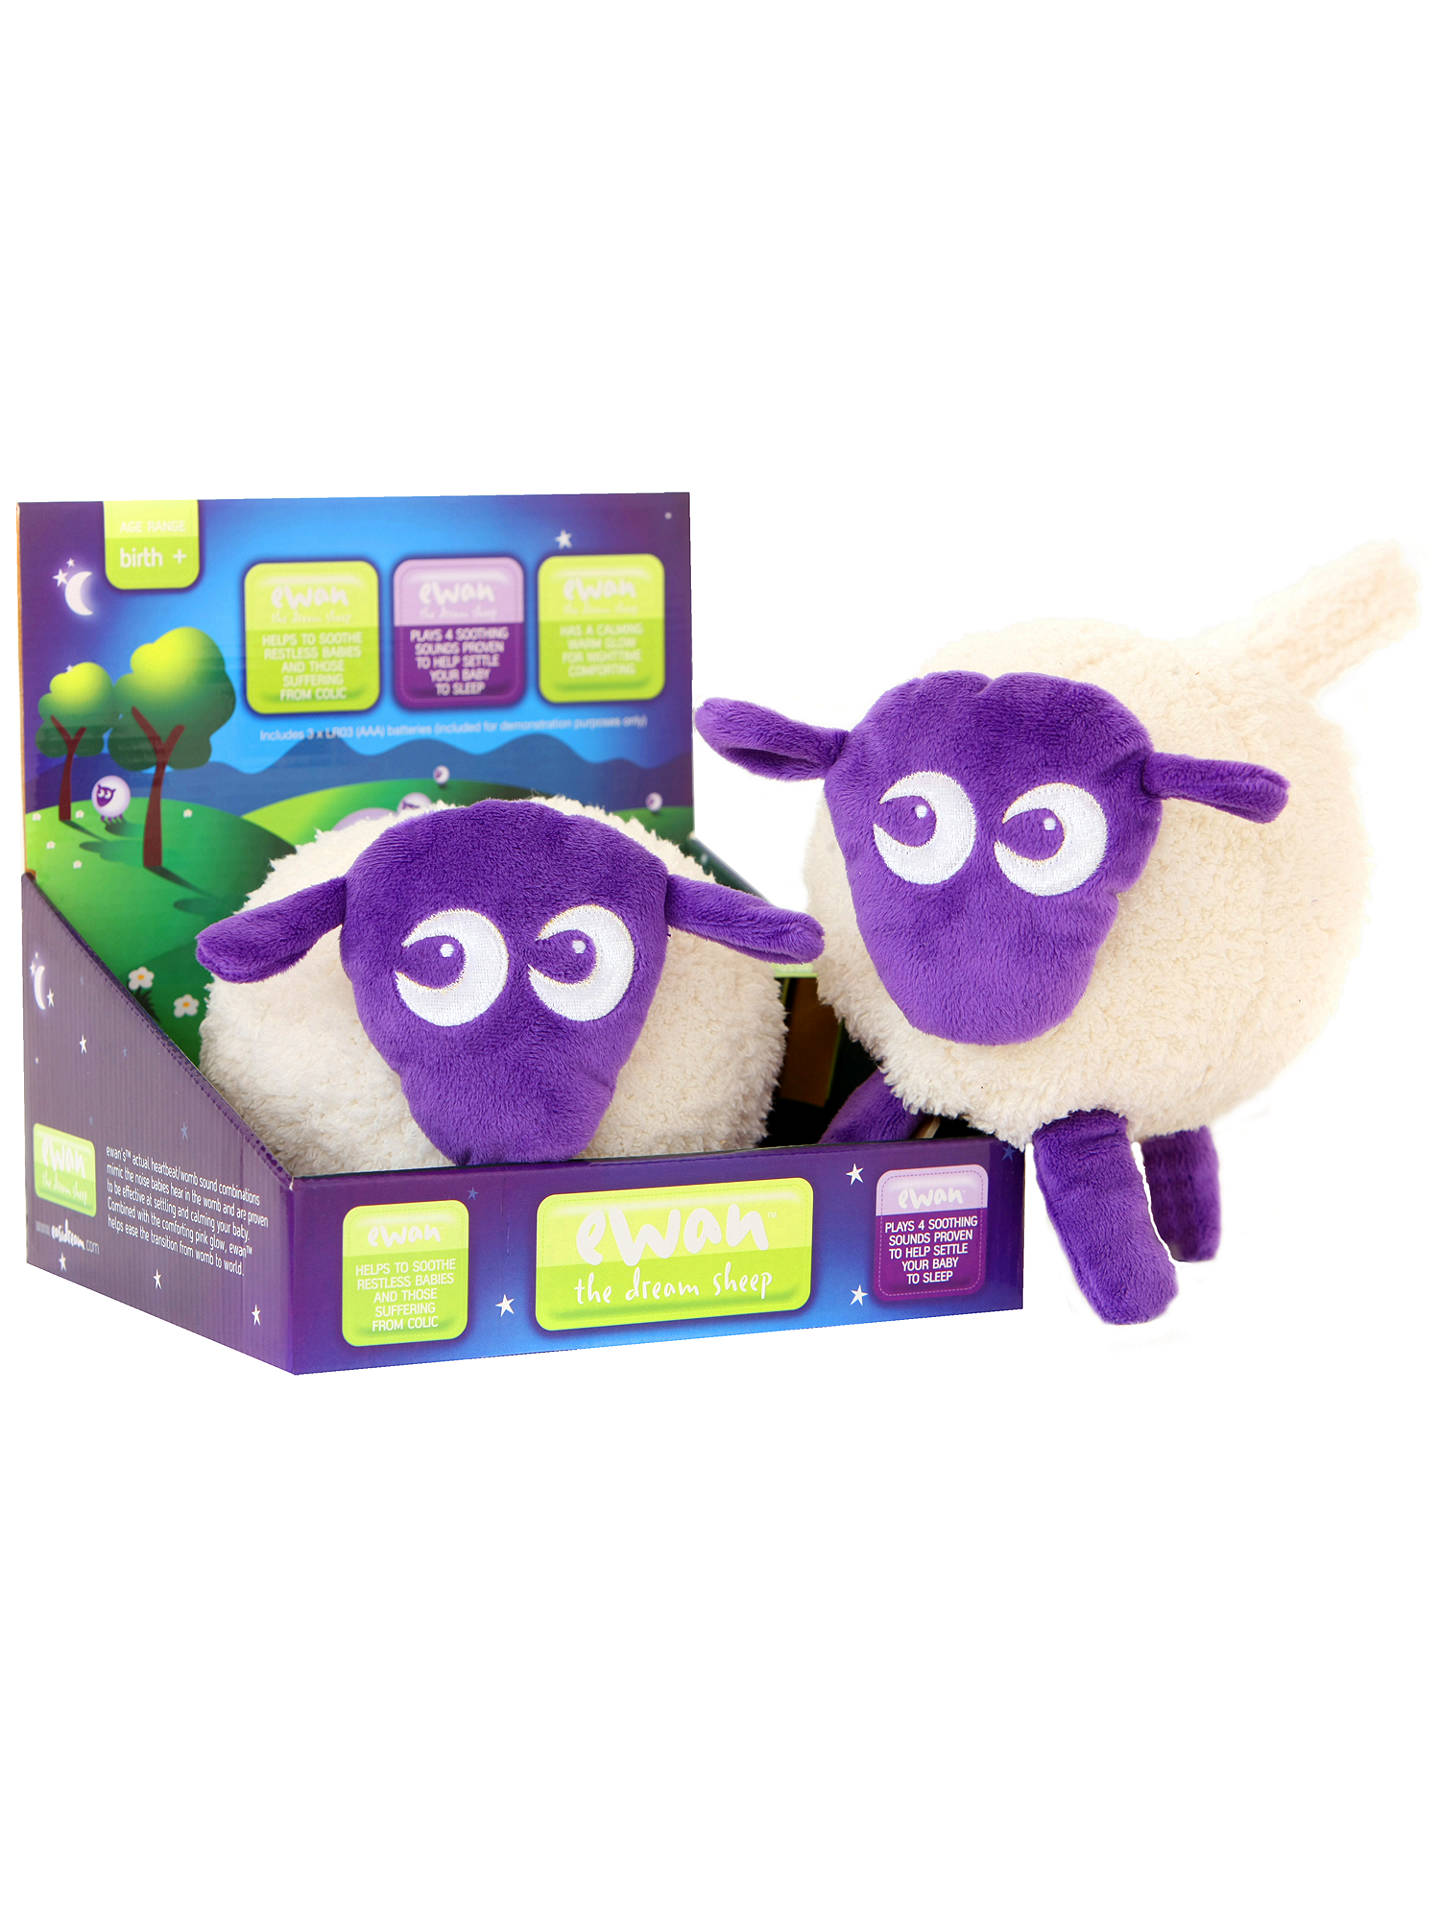 Buy Ewan the Dream Sheep, Purple Online at johnlewis.com